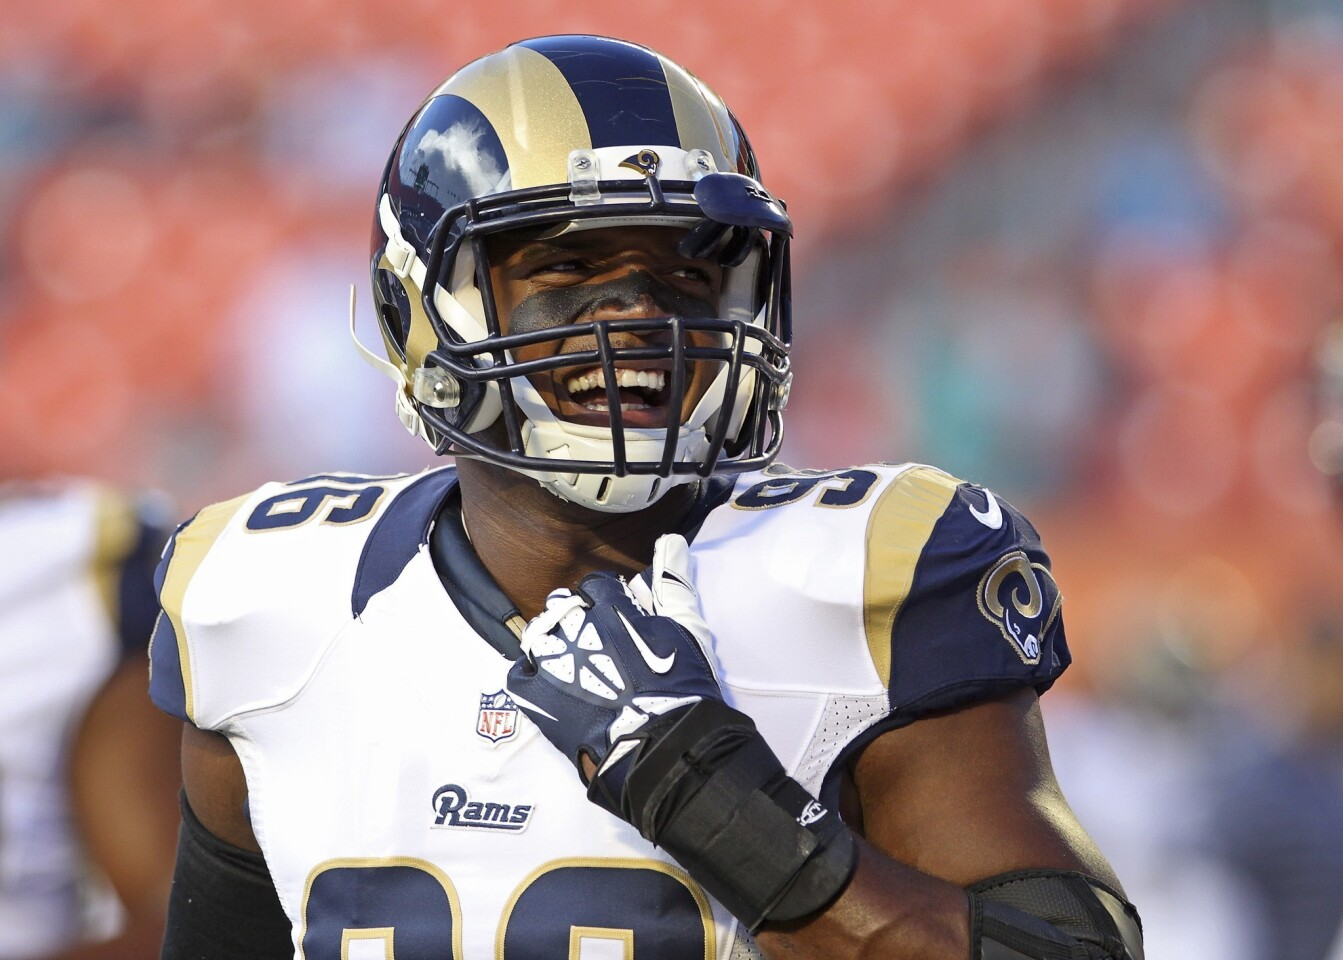 St. Louis Rams defensive end Michael Sam reacts during pregame workouts before a preseason contest against the Miami Dolphins on Thursday.